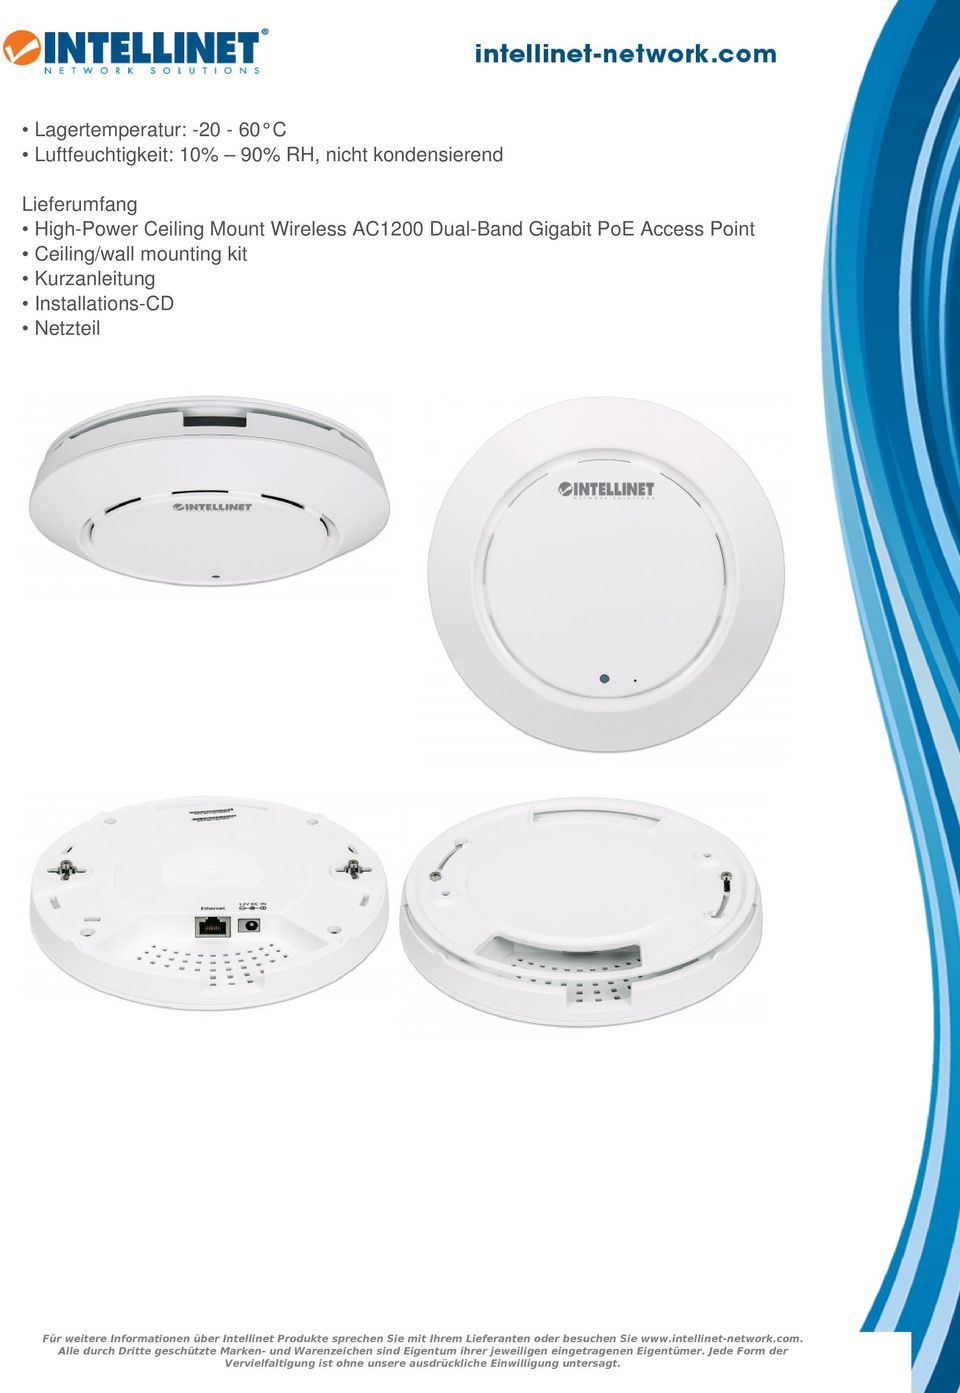 Wireless AC1200 Dual-Band Gigabit PoE Access Point